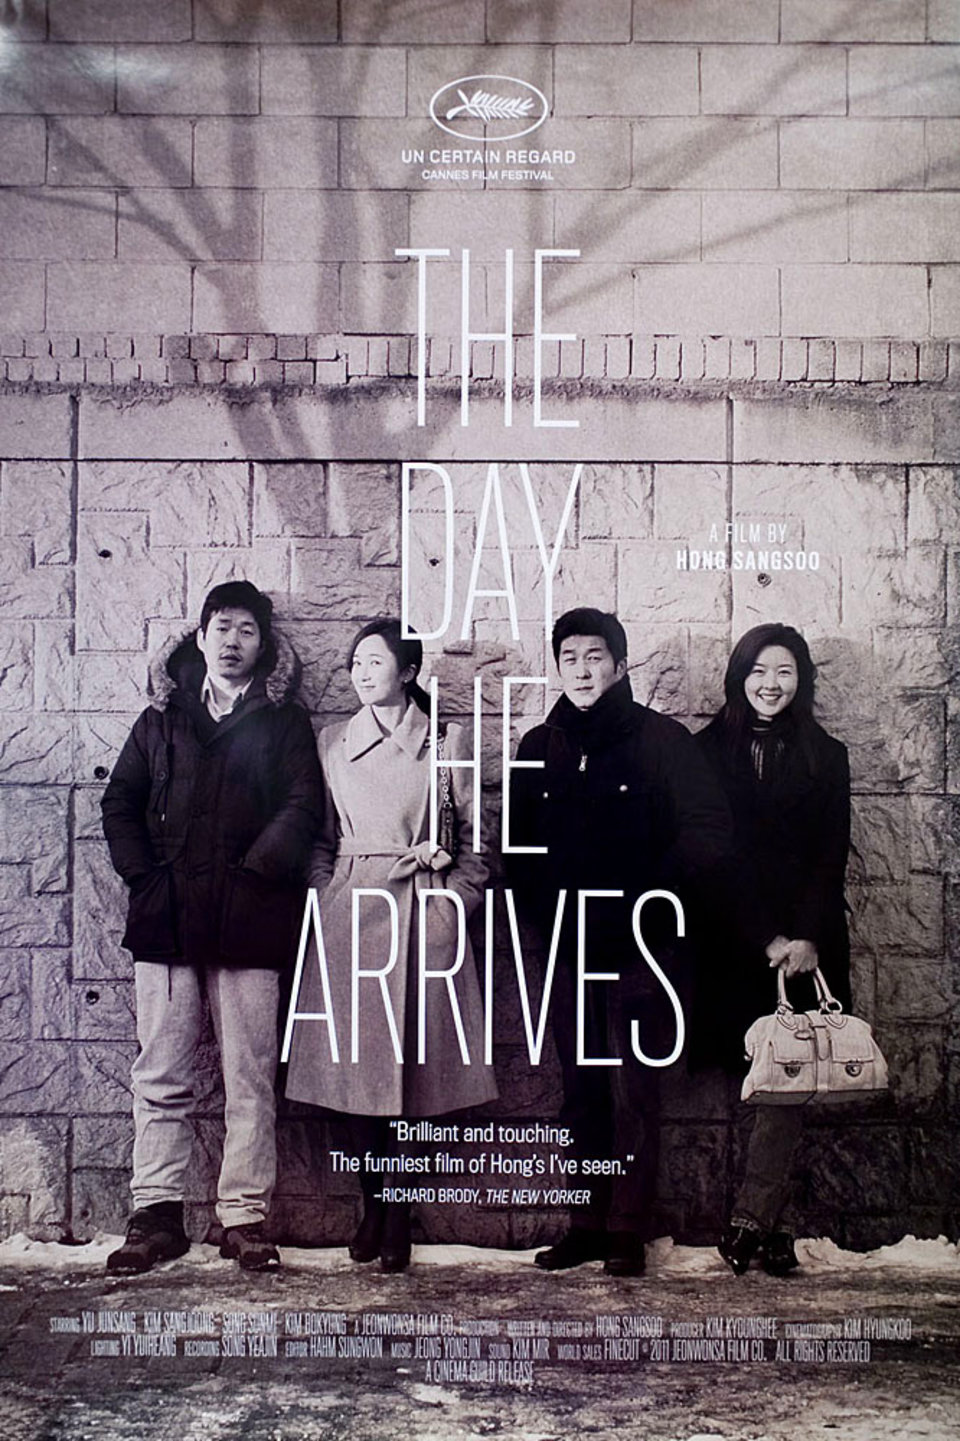 The Day He Arrives 2011 U.S. One Sheet Poster